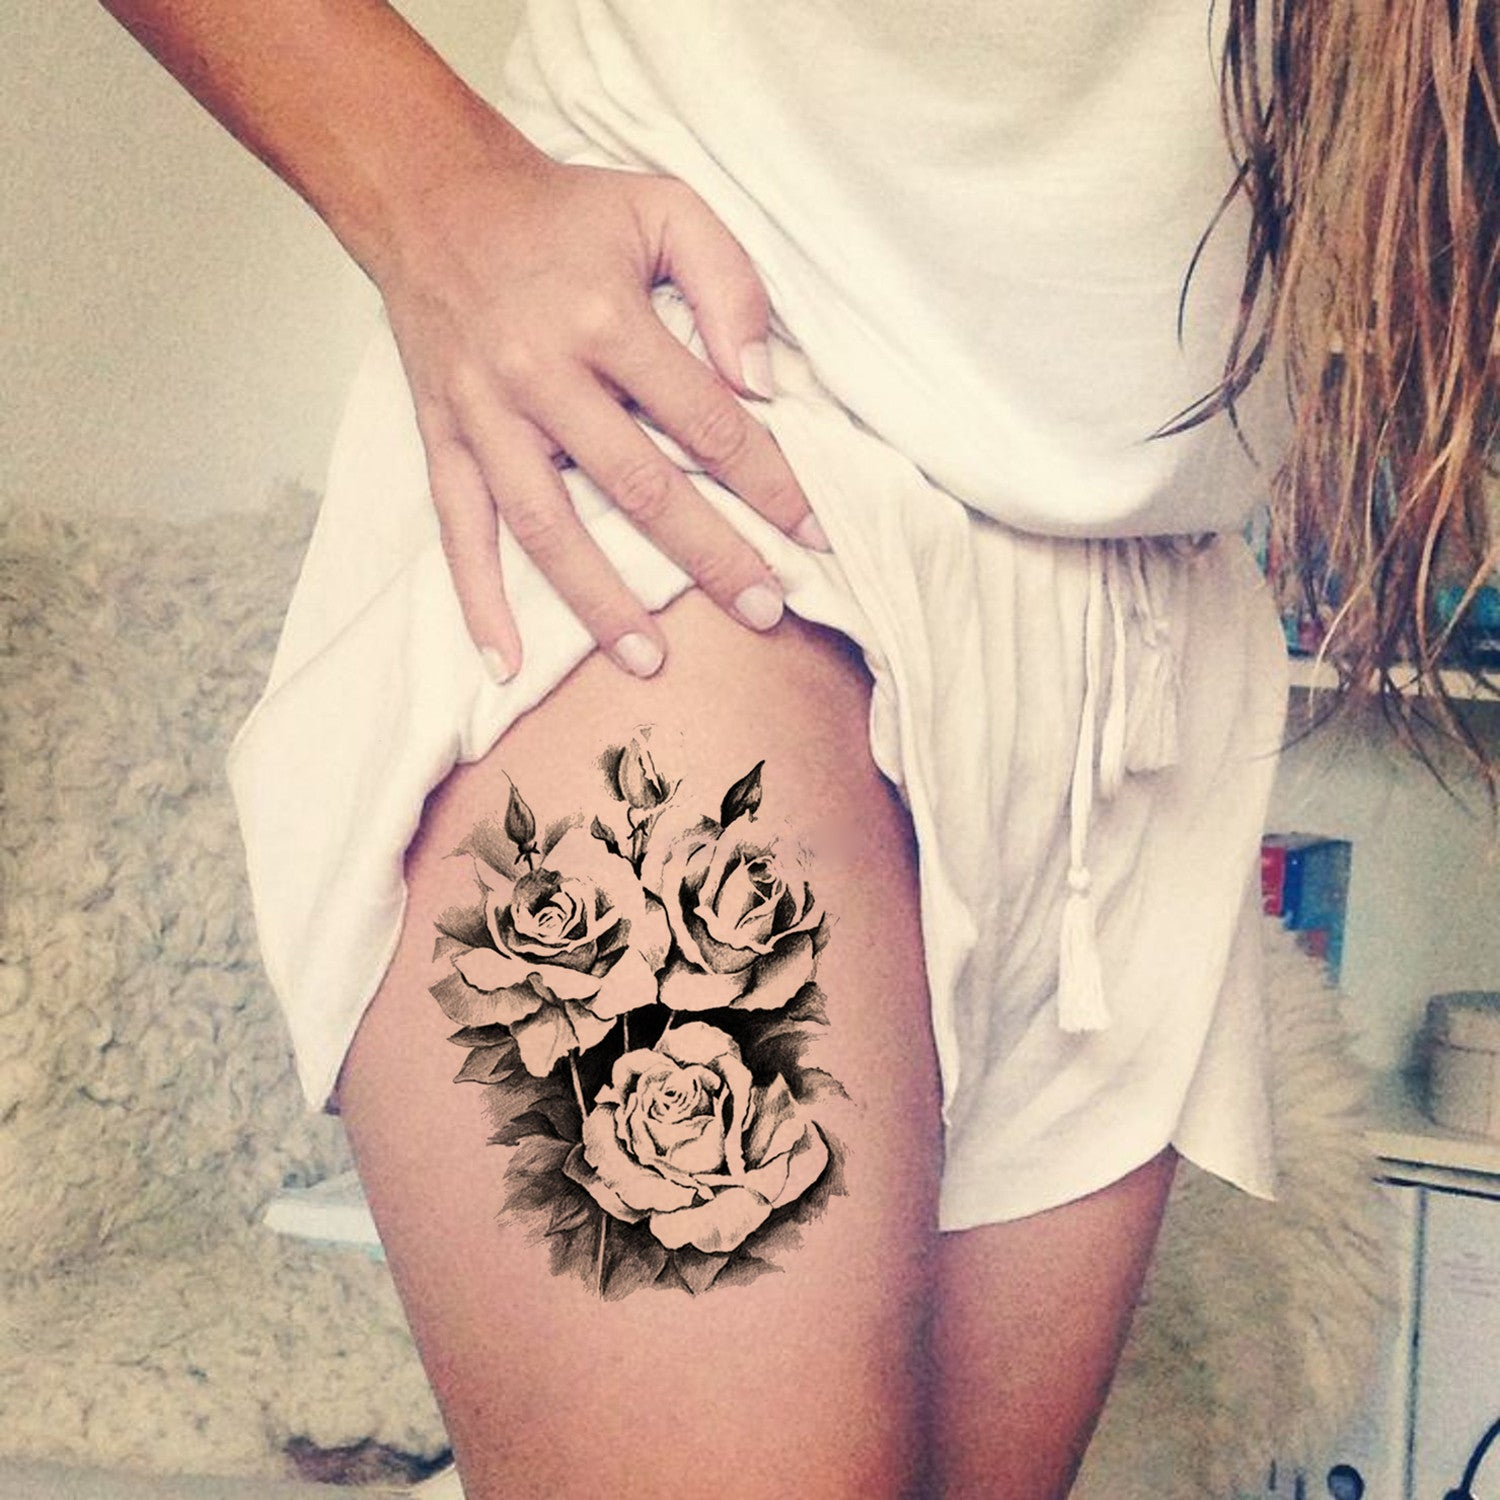 Black Flower Thigh Tattoo Ideas for Women at MyBodiArt.com